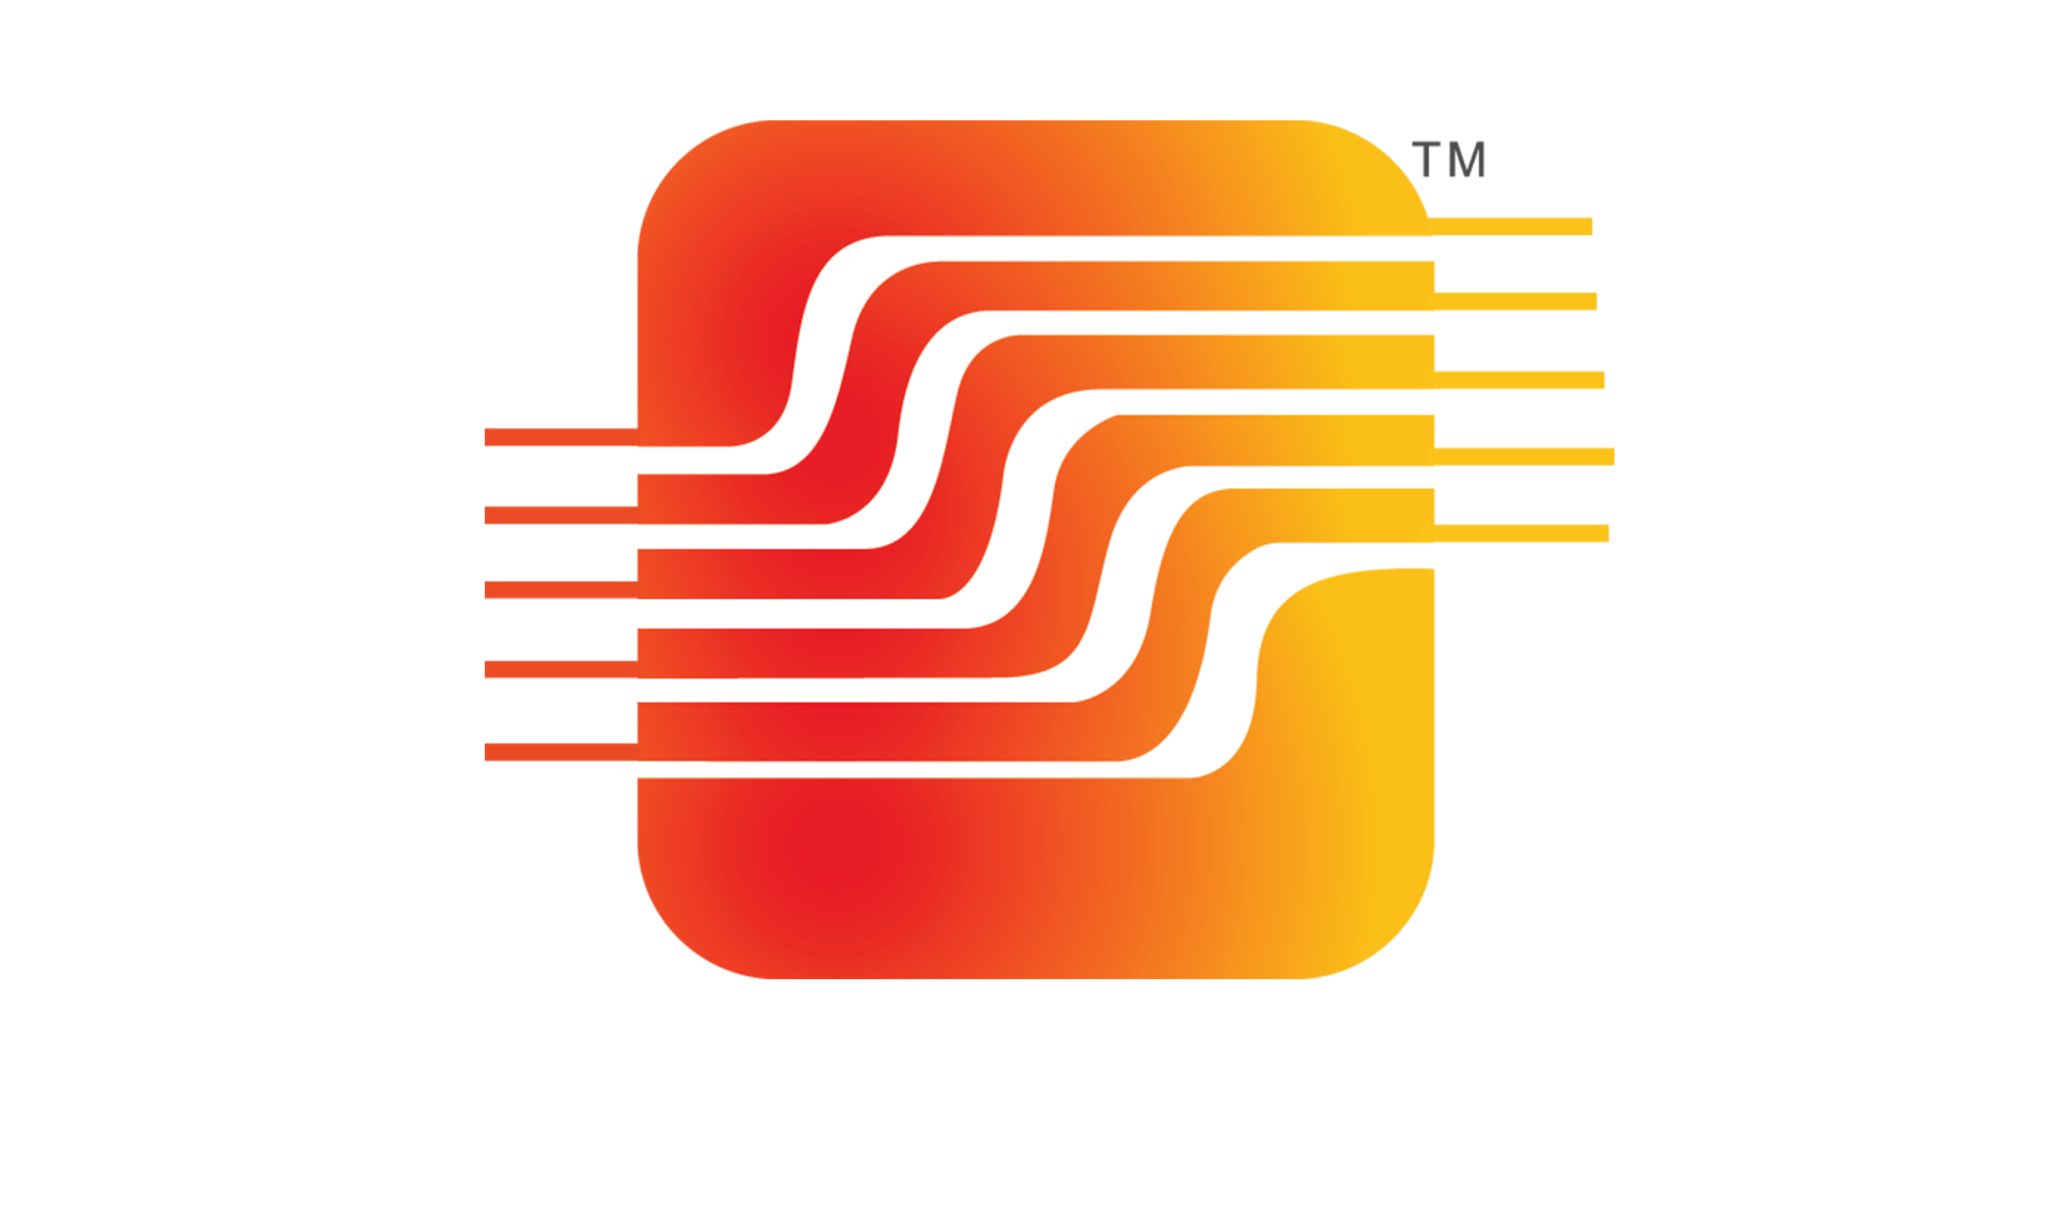 streamingo logo_01 - Copy